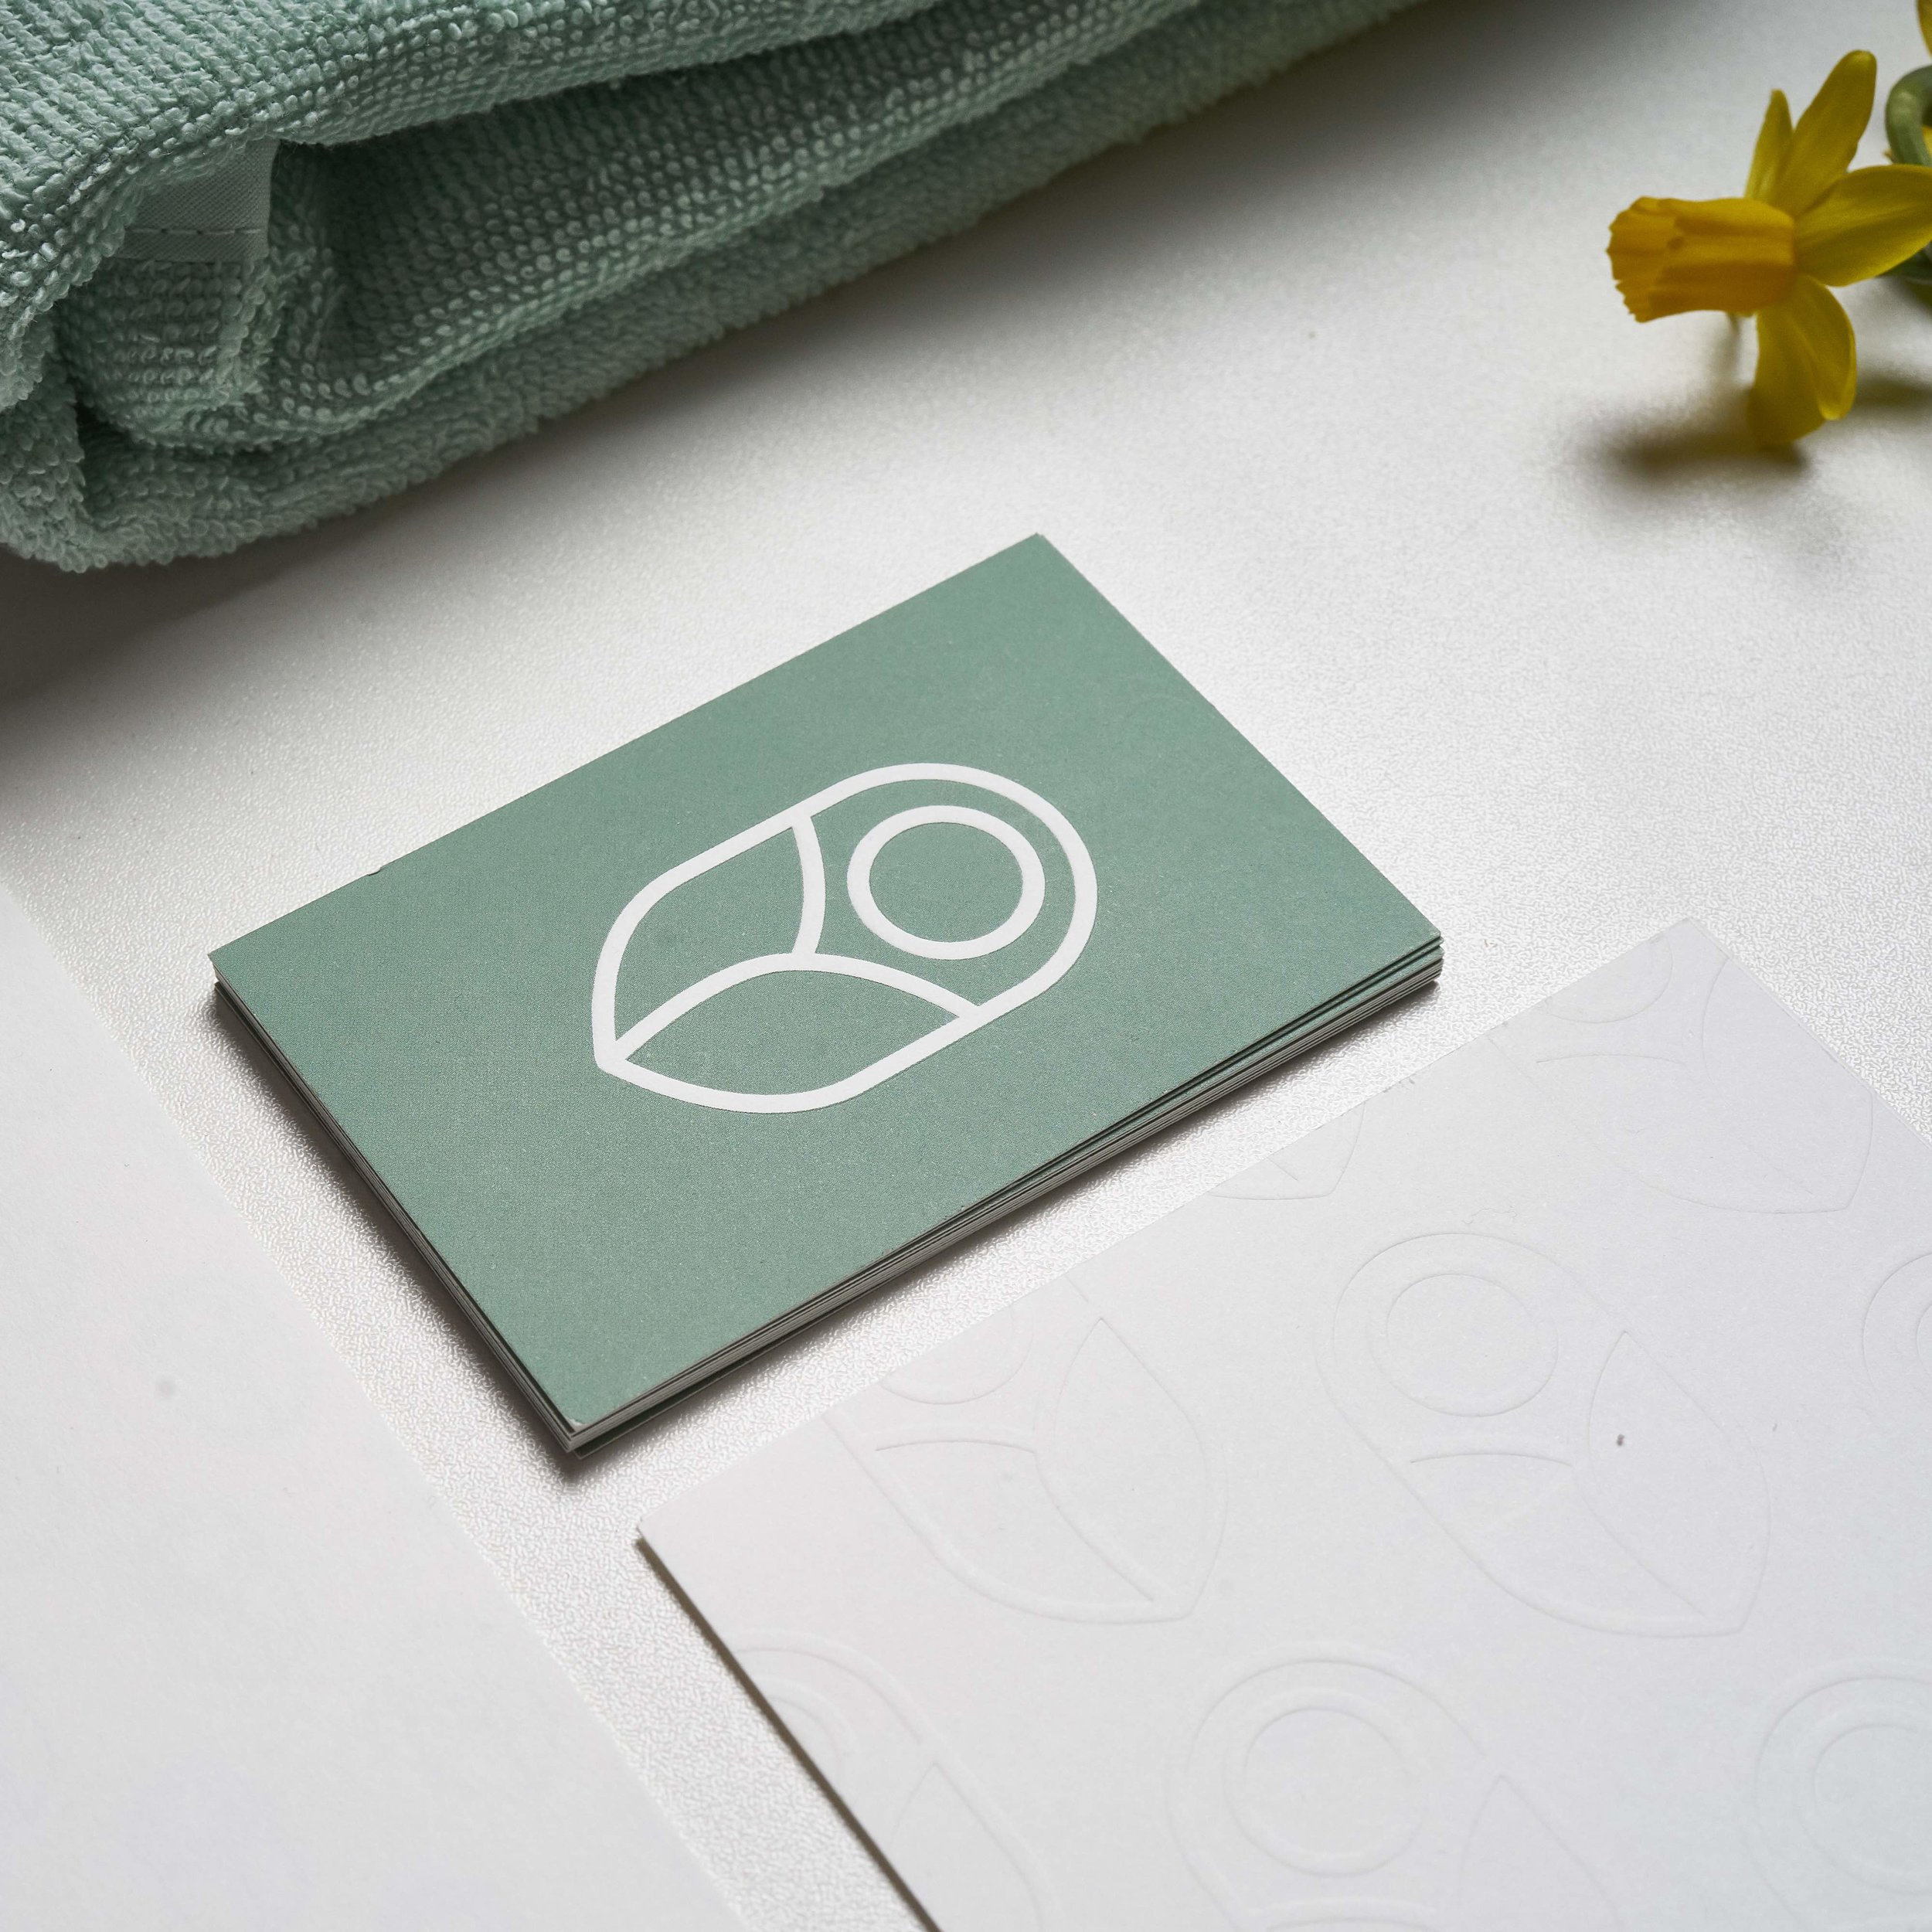 embossing details on business card.jpg